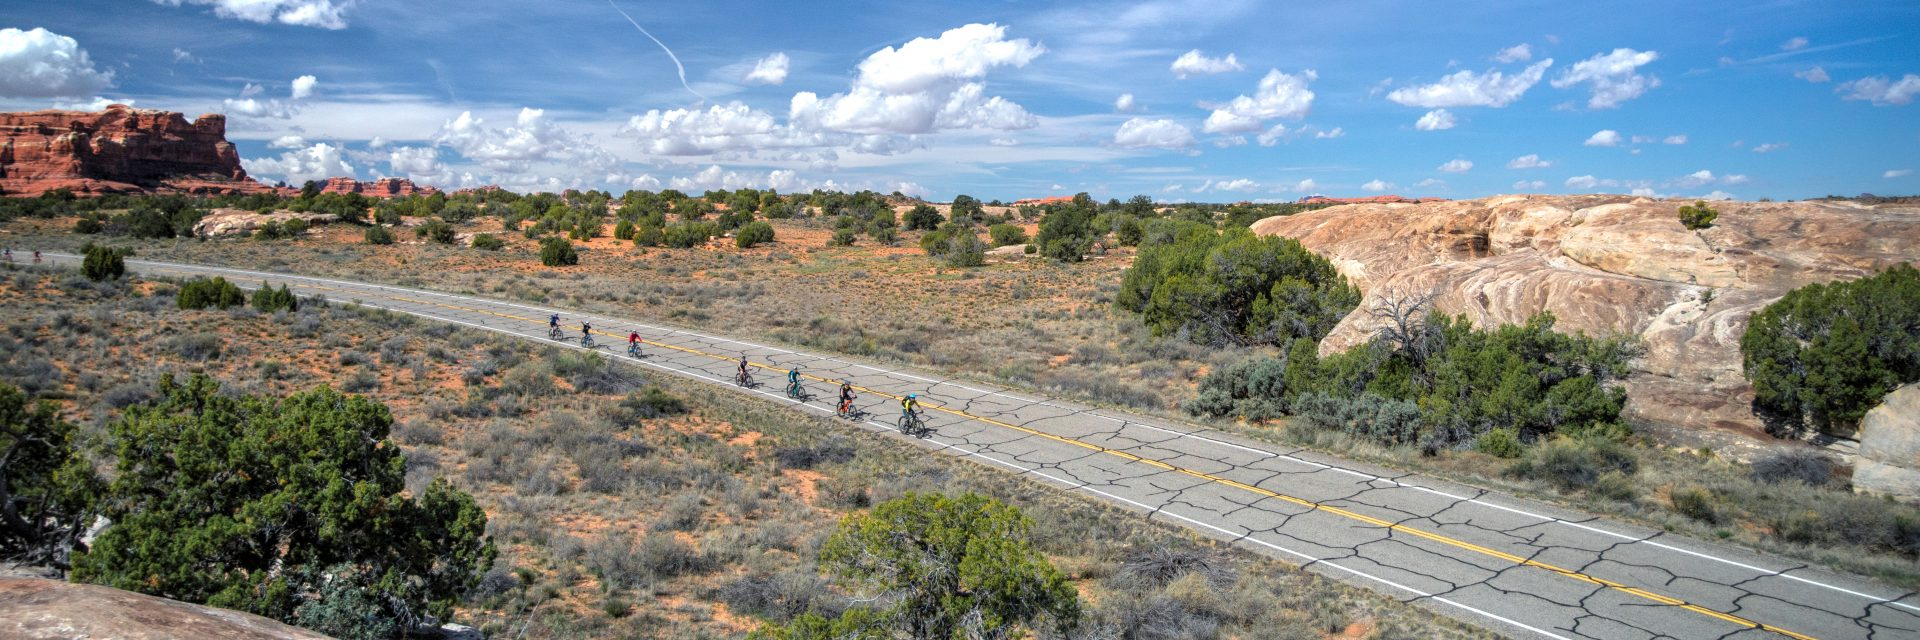 A group of mountain bikers ride a short section of paved road on the way to the Needles Visitor Center during Day 1 of The Needles to Moab guided tour